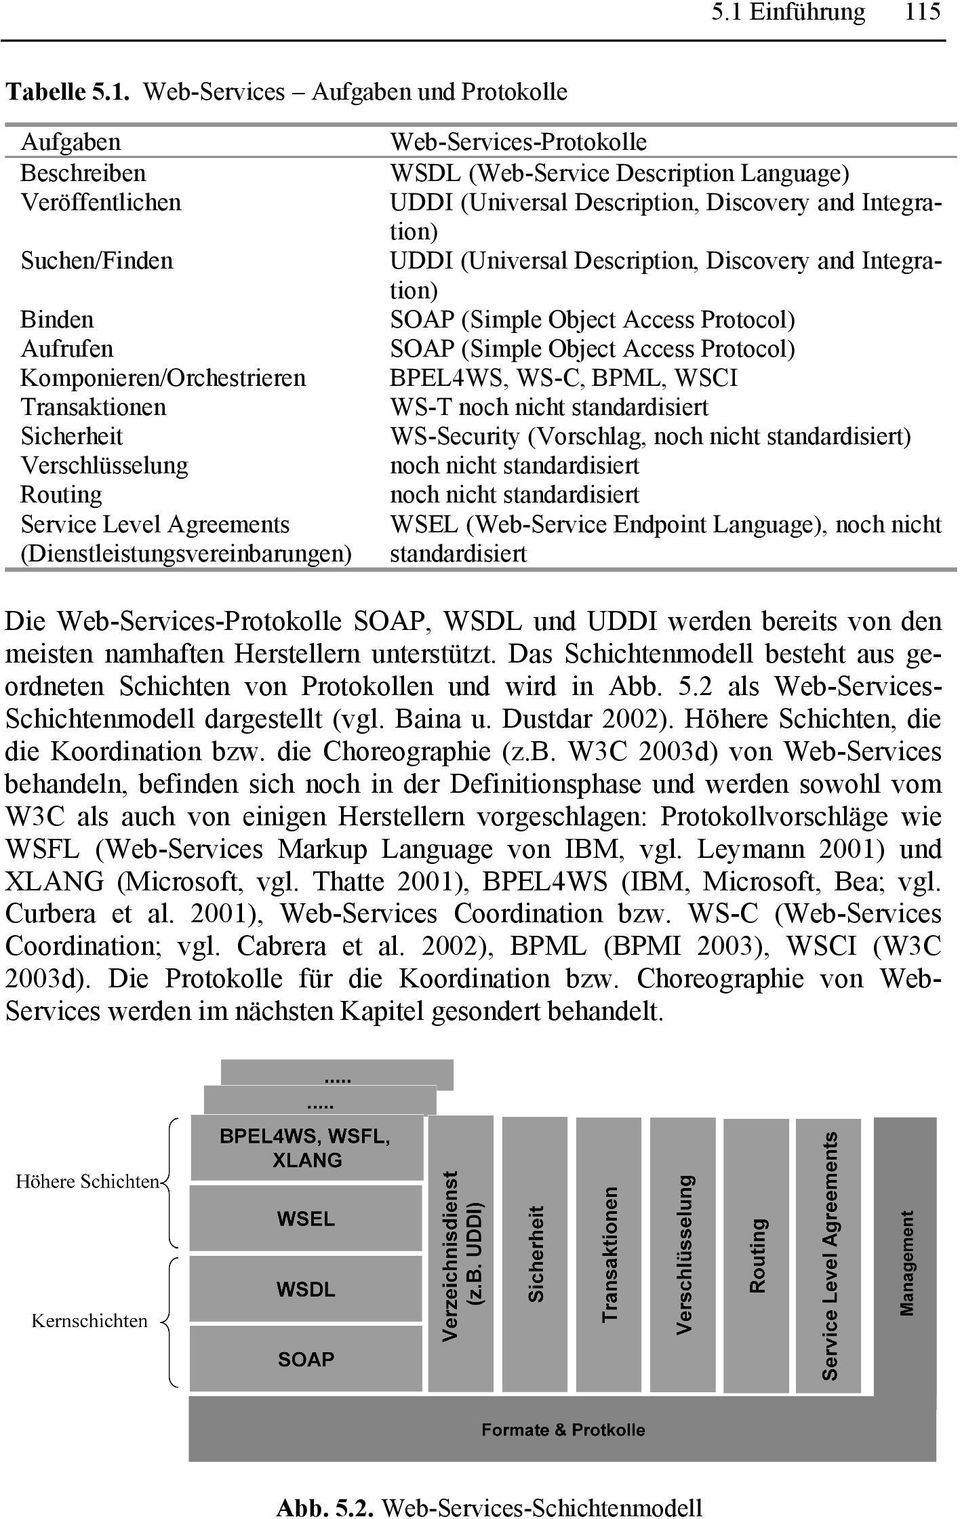 Integration) UDDI (Universal Description, Discovery and Integration) SOAP (Simple Object Access Protocol) SOAP (Simple Object Access Protocol) BPEL4WS, WS-C, BPML, WSCI WS-T noch nicht standardisiert